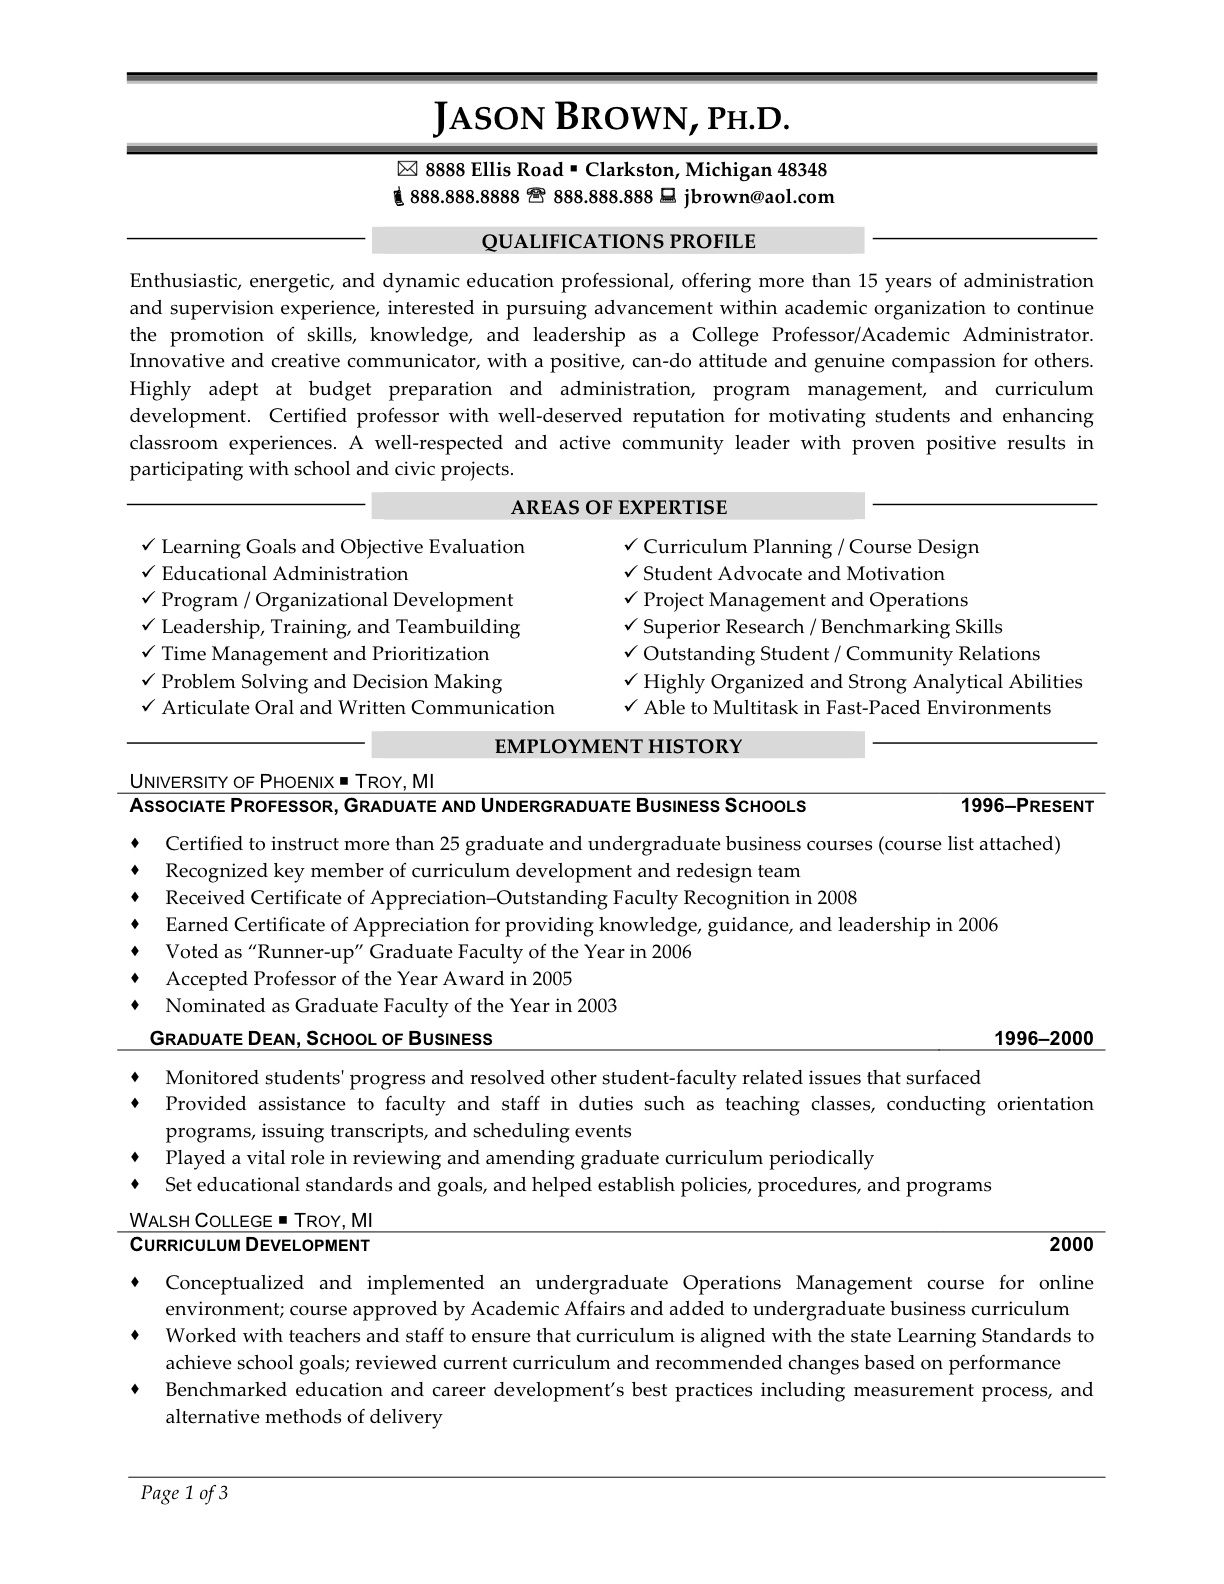 sample phd resume for industry sample phd resume for industry engineering phd resume sample phd resume example phd resume format phd resume template phd - Phd Resume